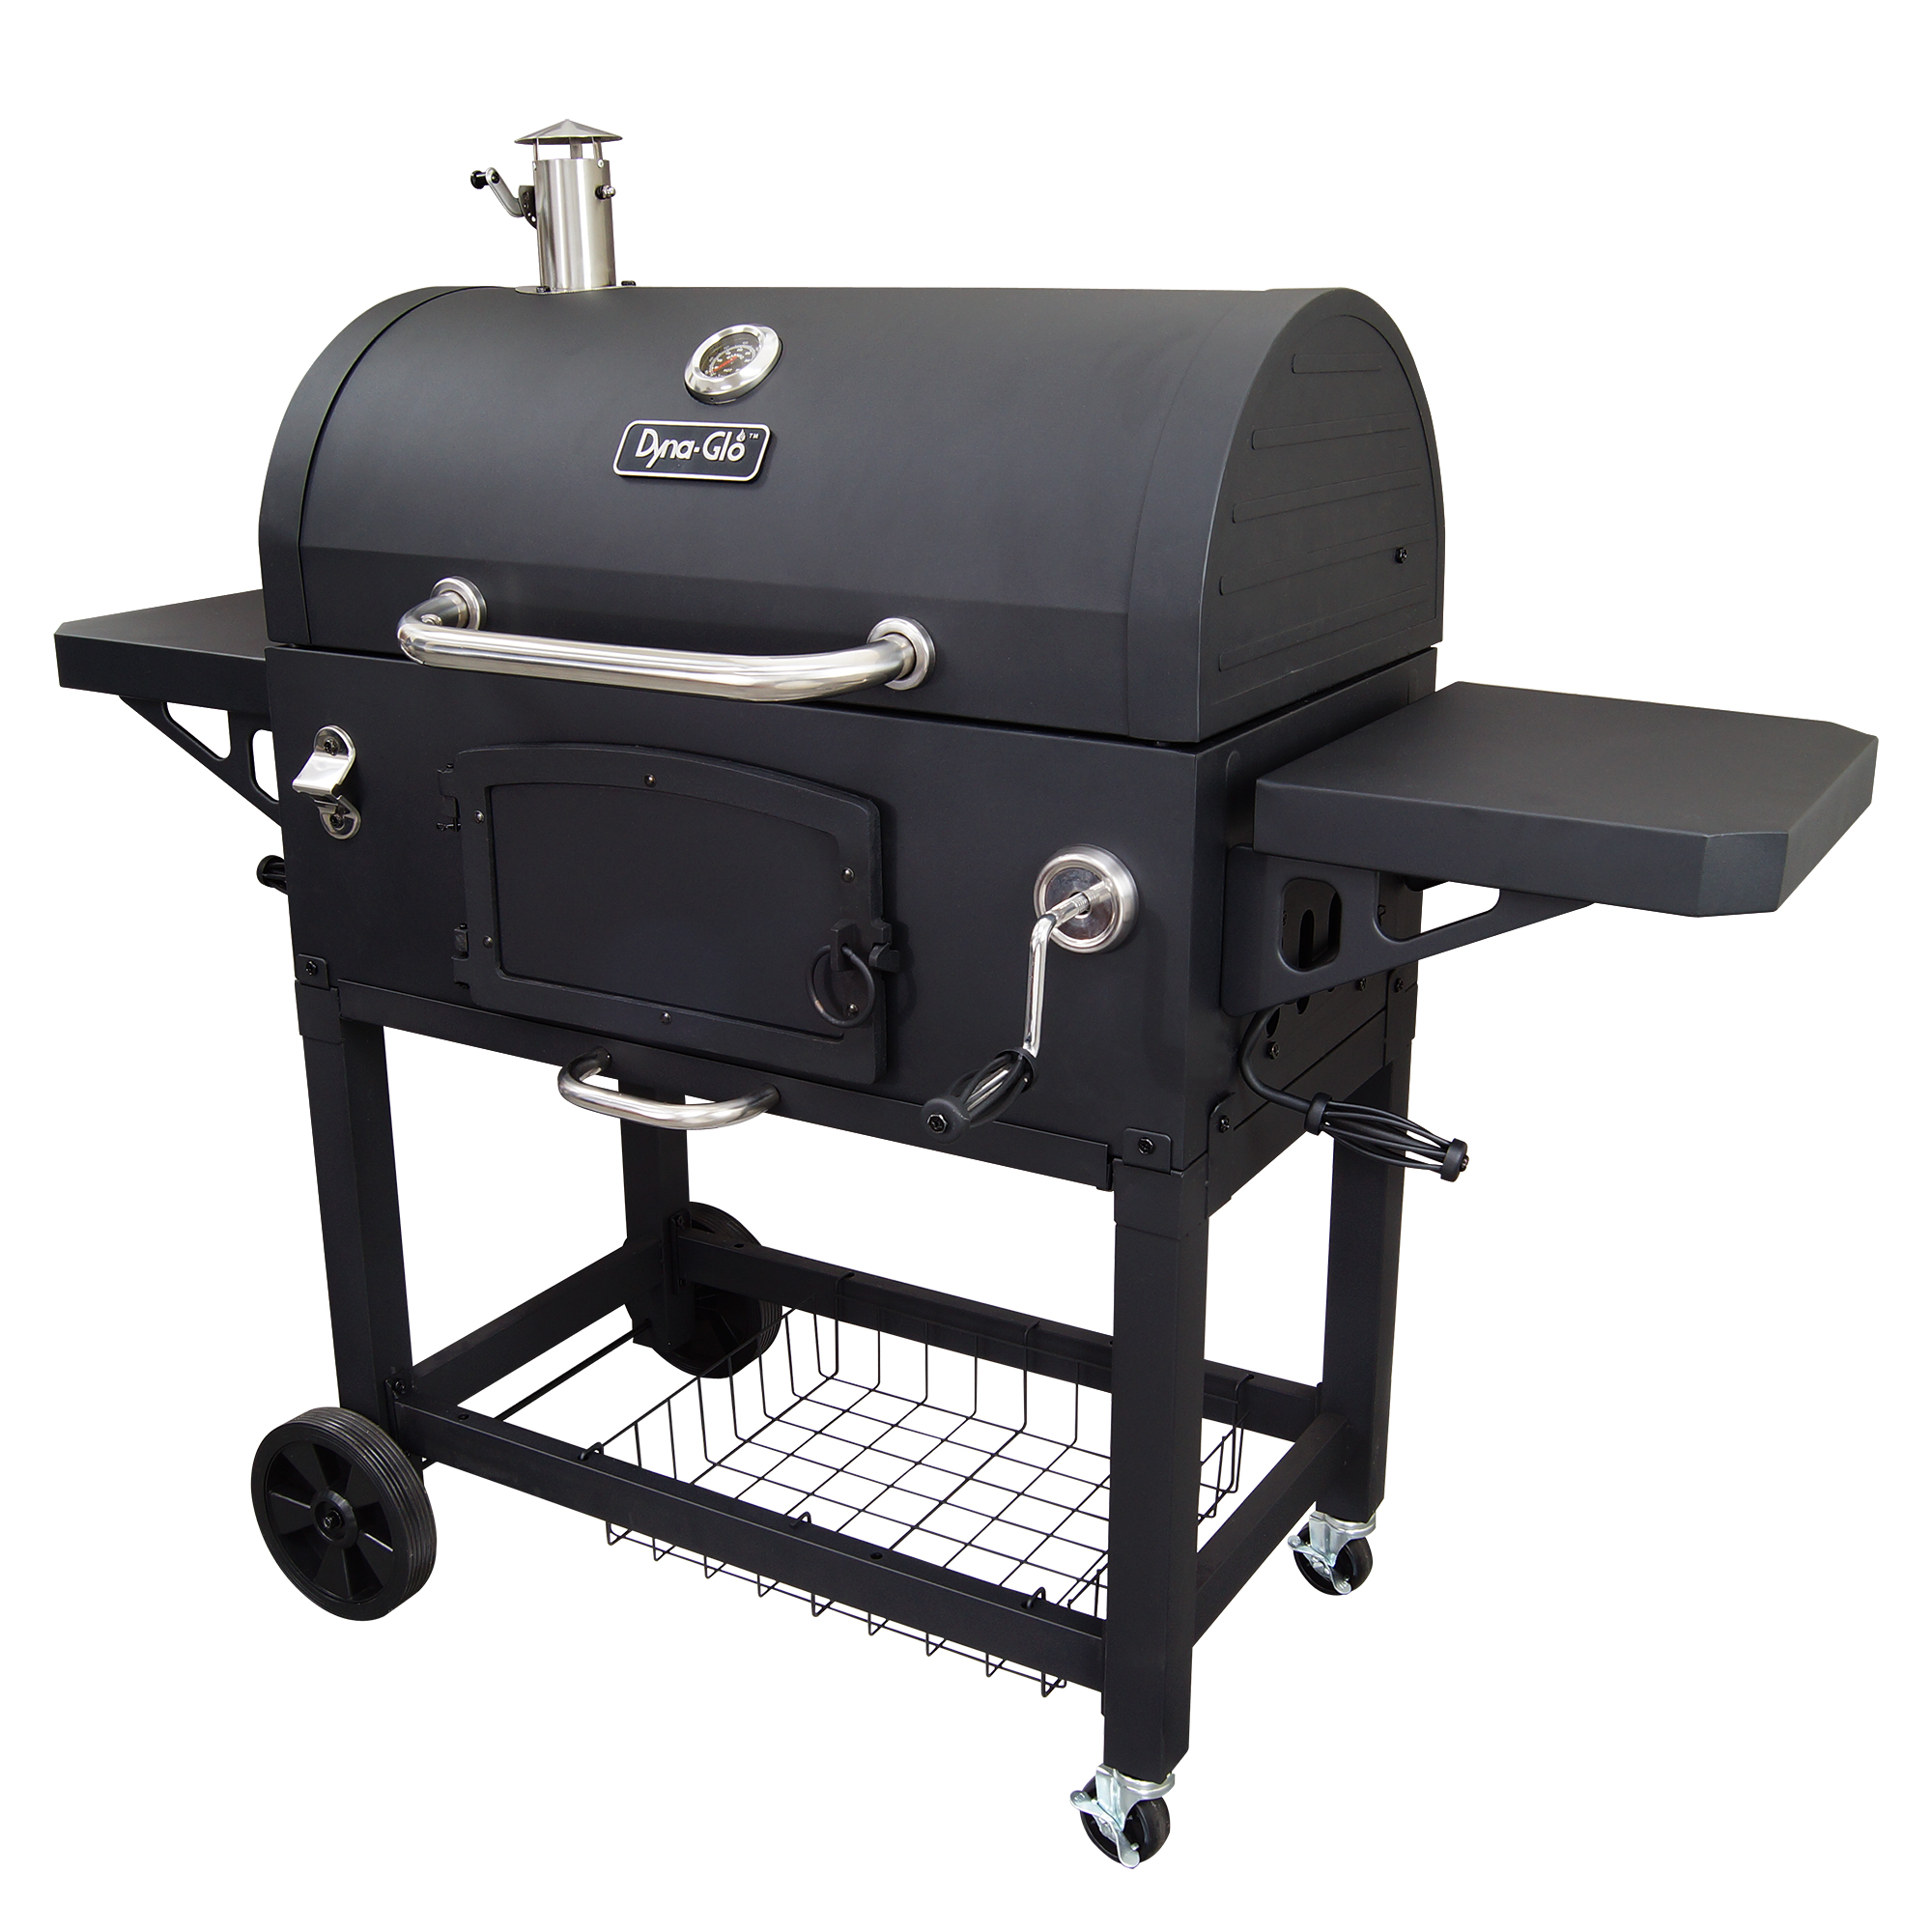 Dyna-Glo DGN576DNC-D X-Large Heavy-Duty Charcoal Grill by GHP Group, Inc.